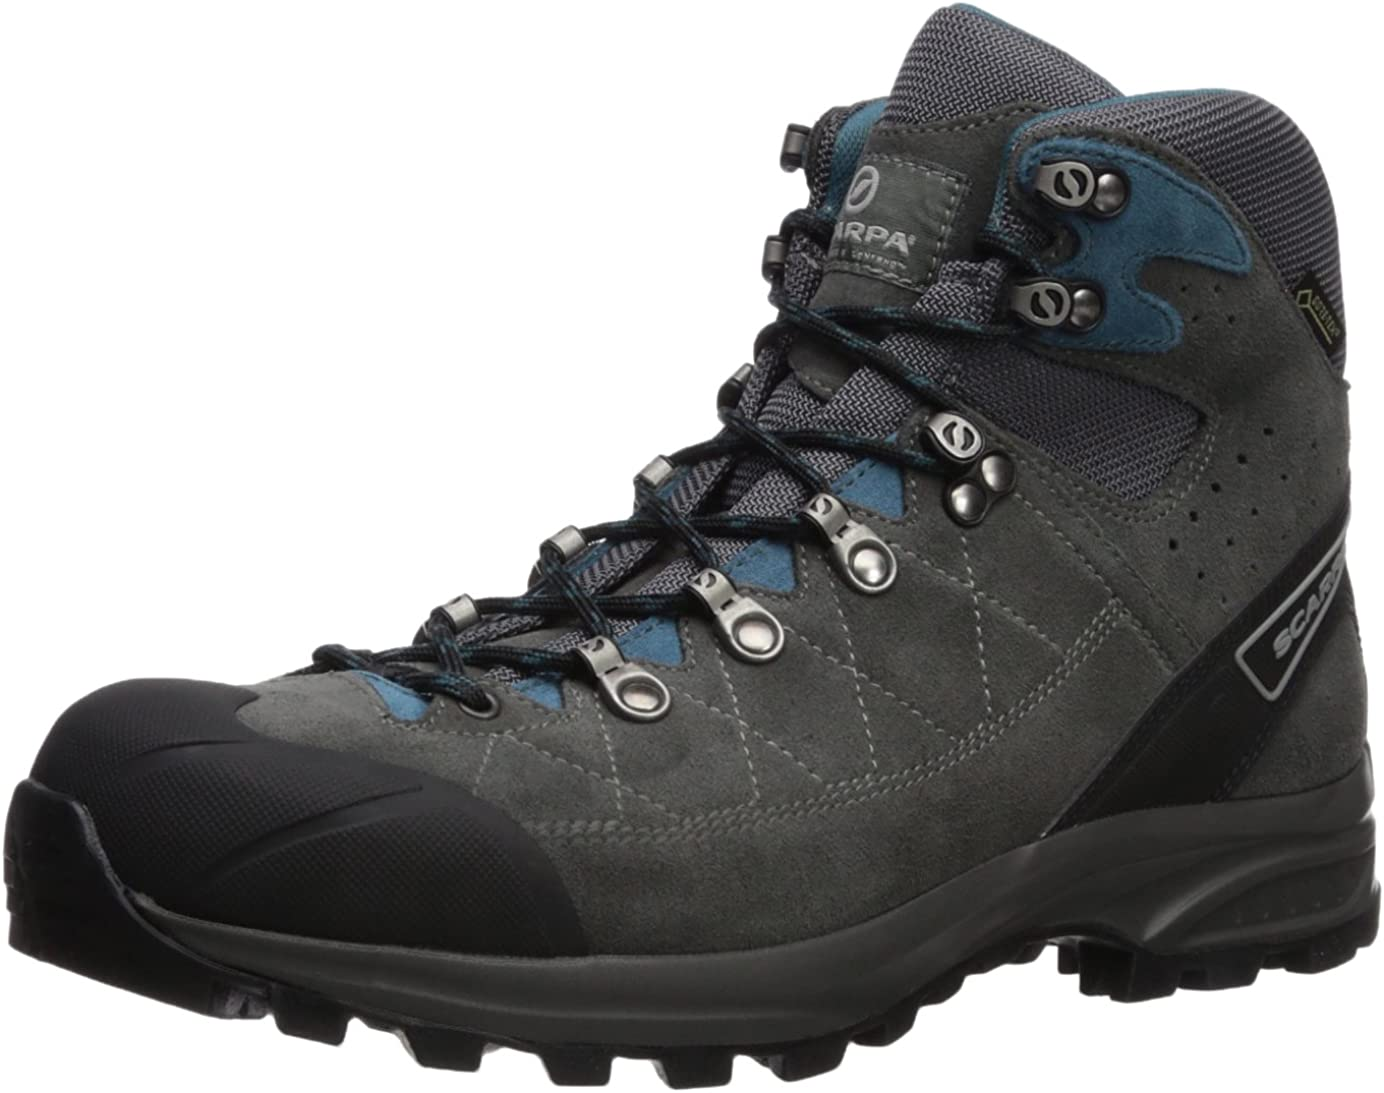 SCARPA Men s Kailash Trek GTX Hiking Boot